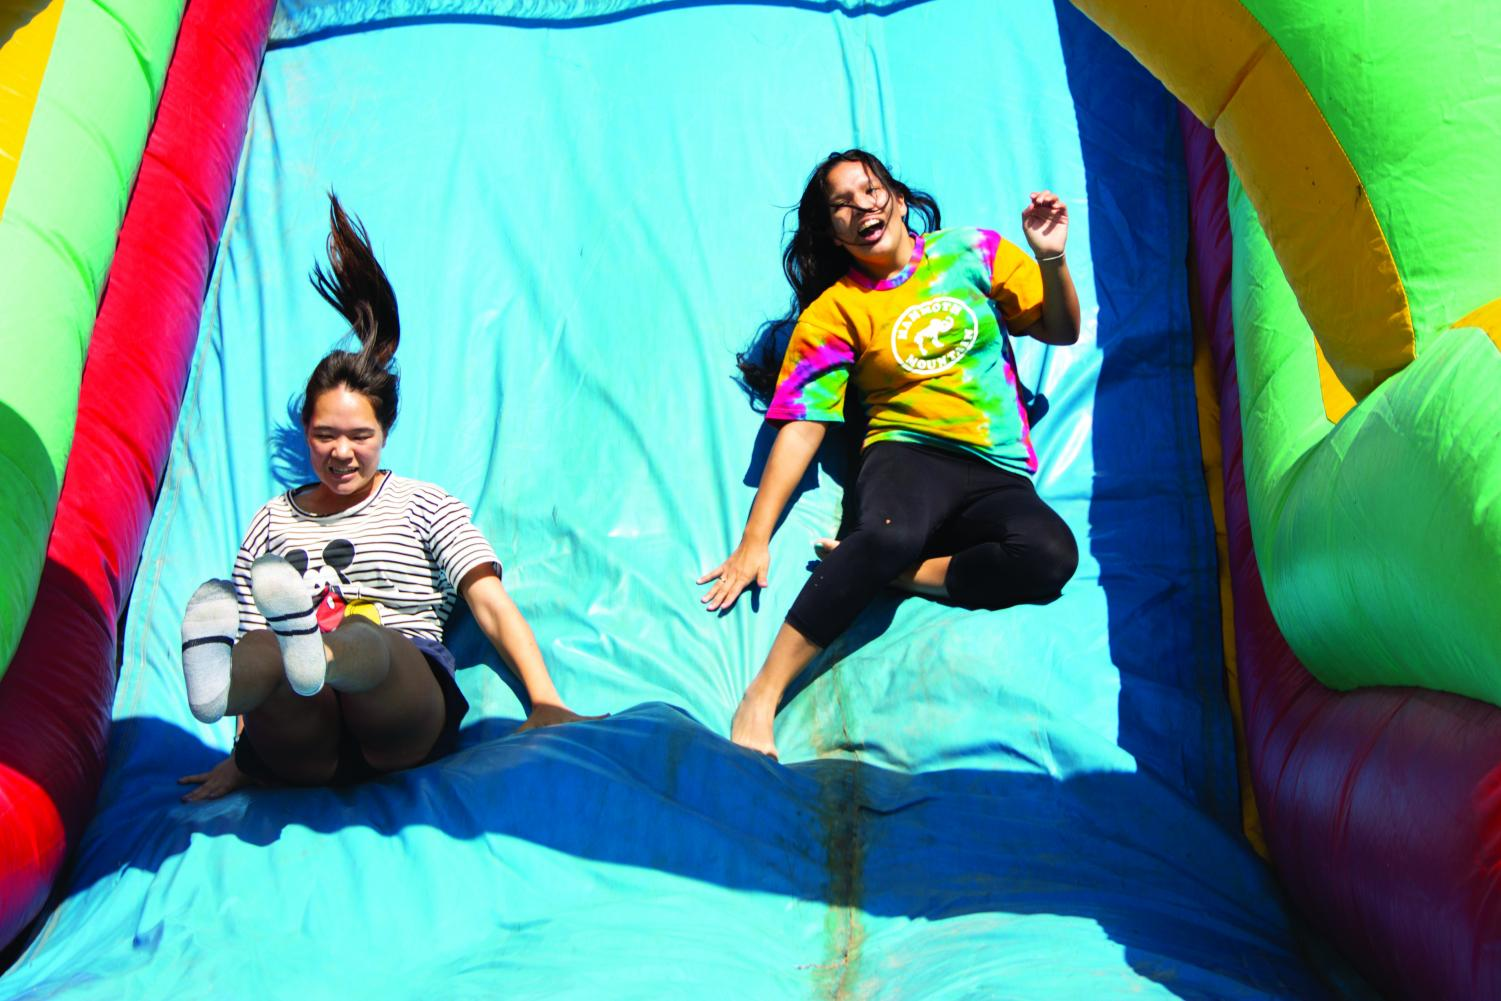 Sheila Kolodji and Dominique Harrison slide down the obstacle course on Aug. 28.